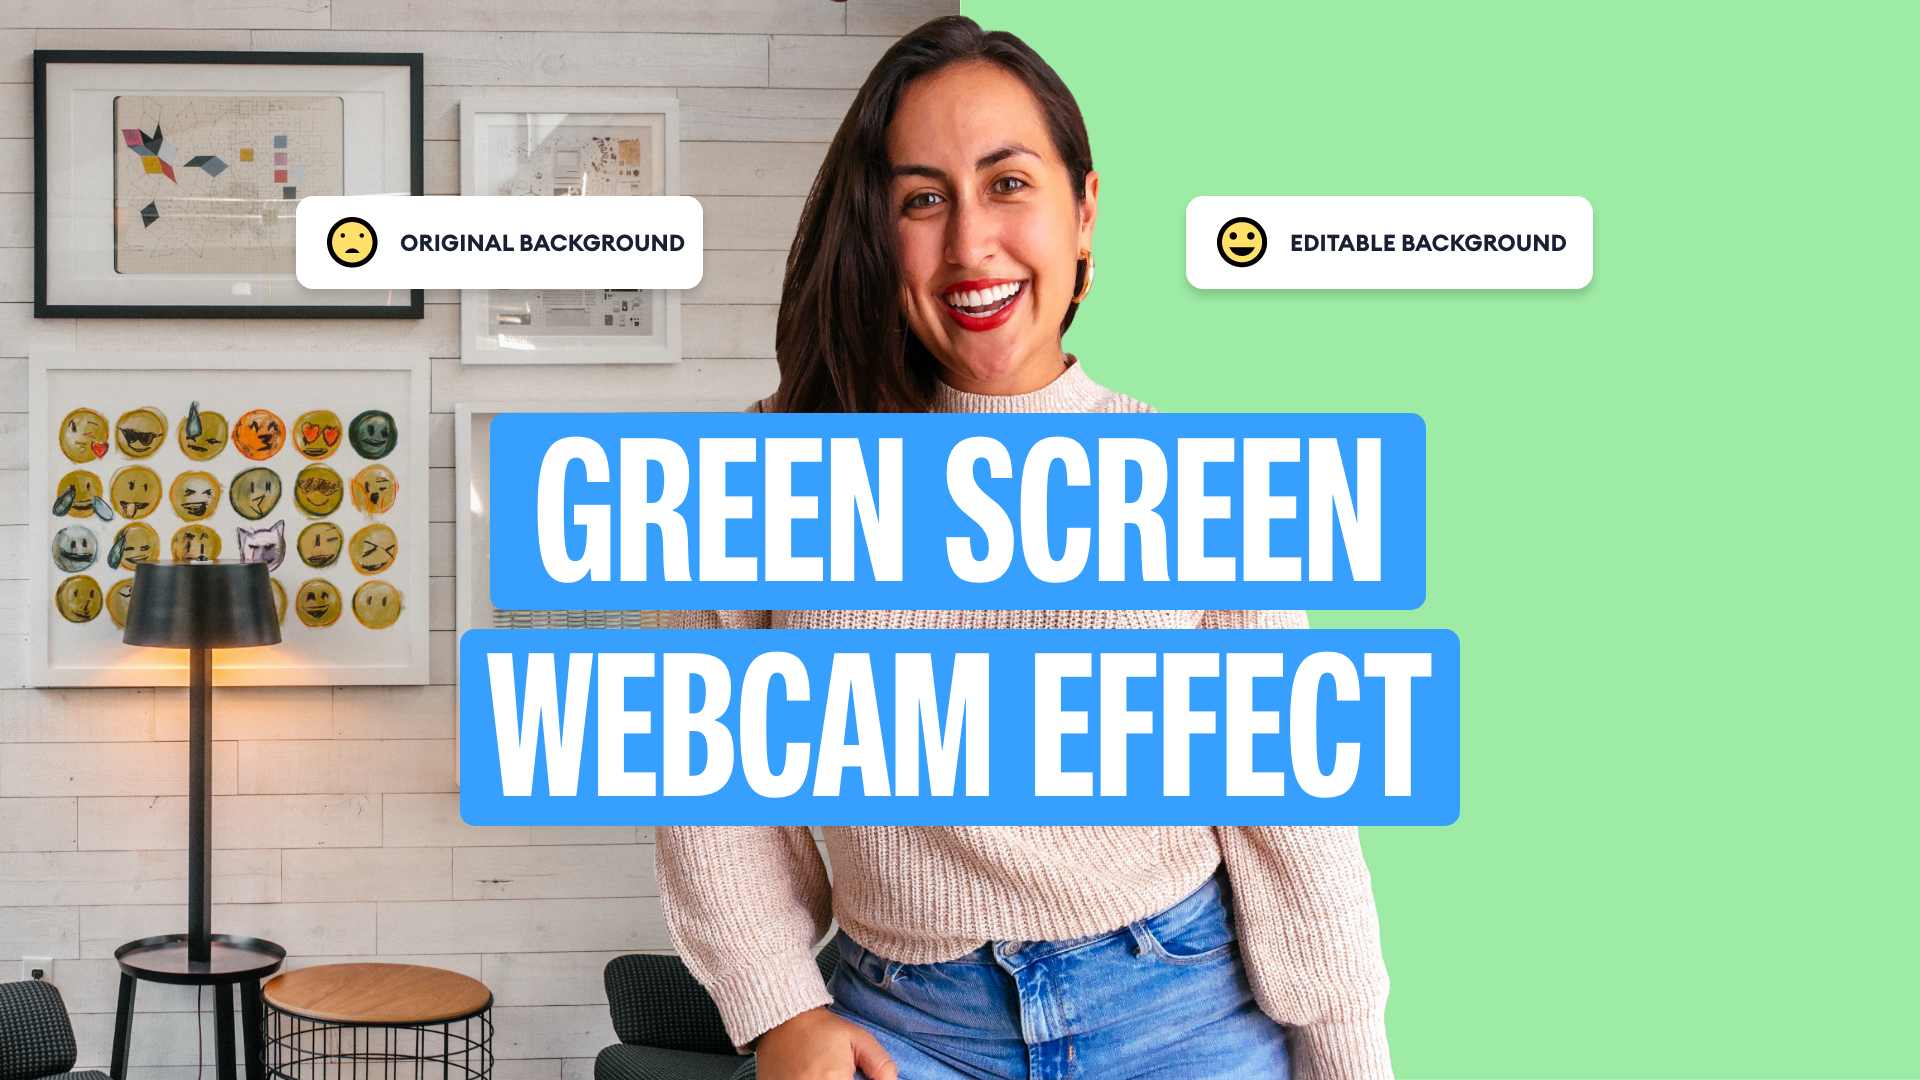 How to Create a Green Screen Video Effect Using a Webcam